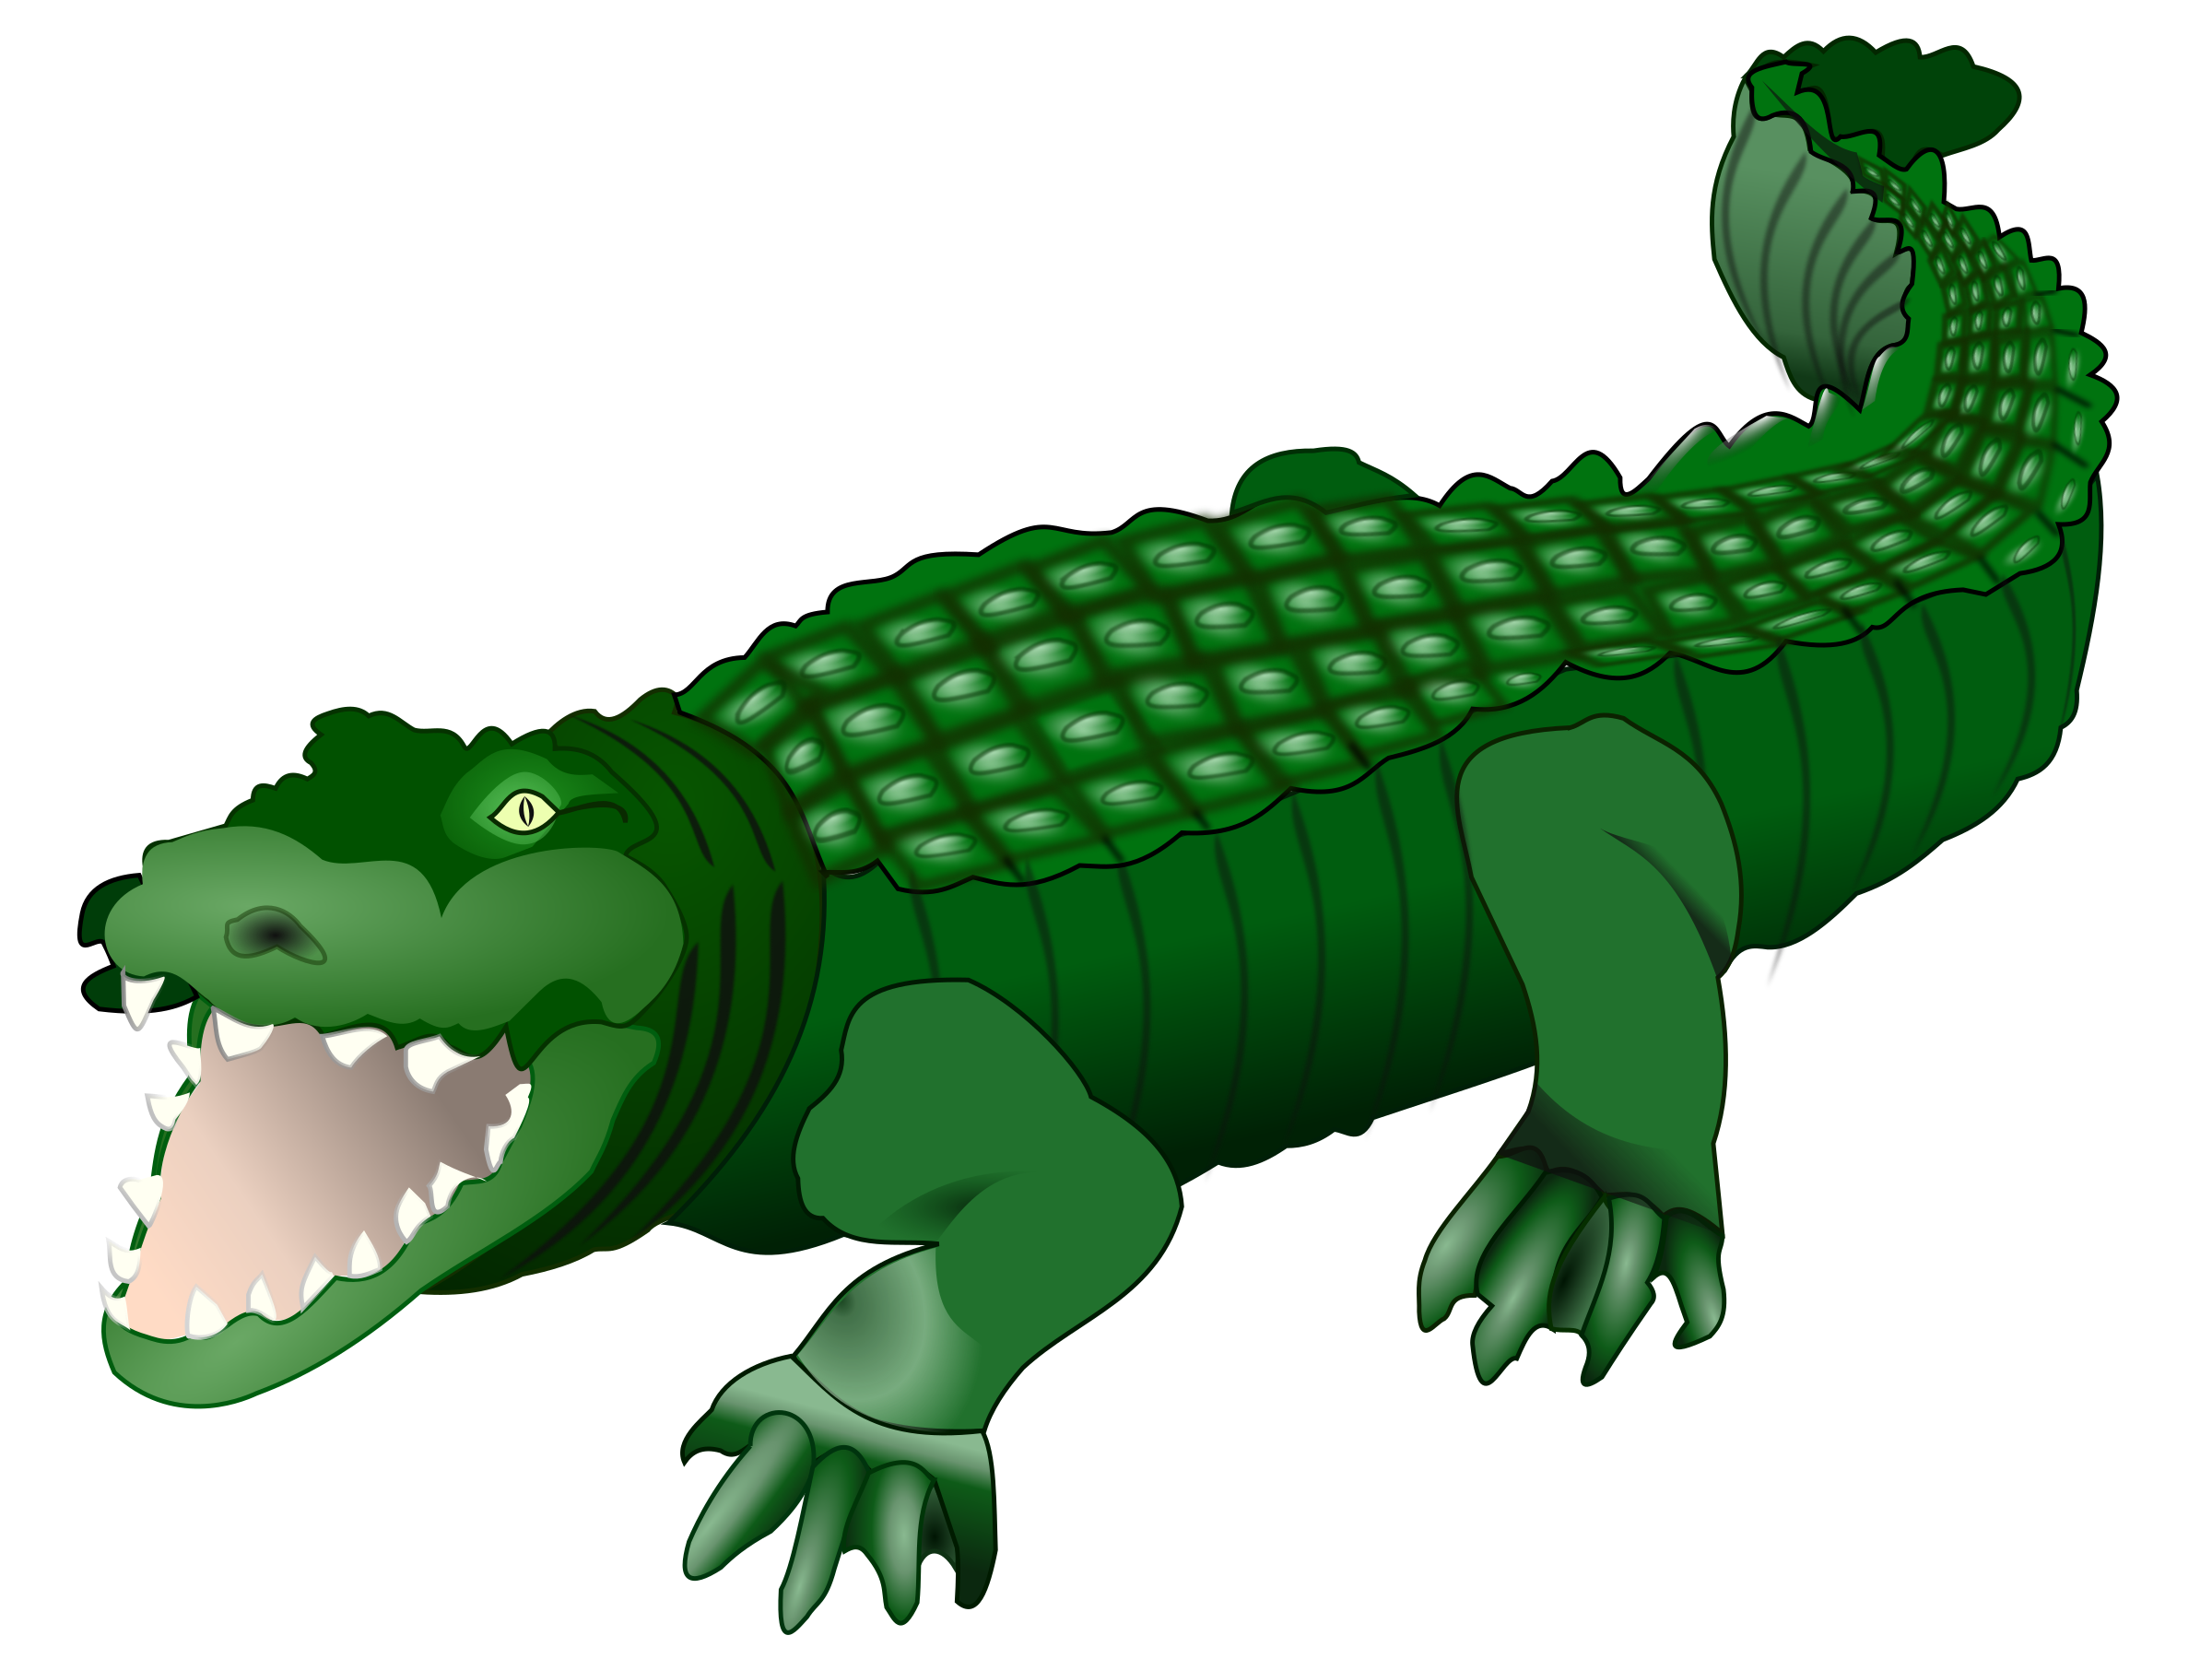 Transparent alligator colored. Collection of free crocoisite